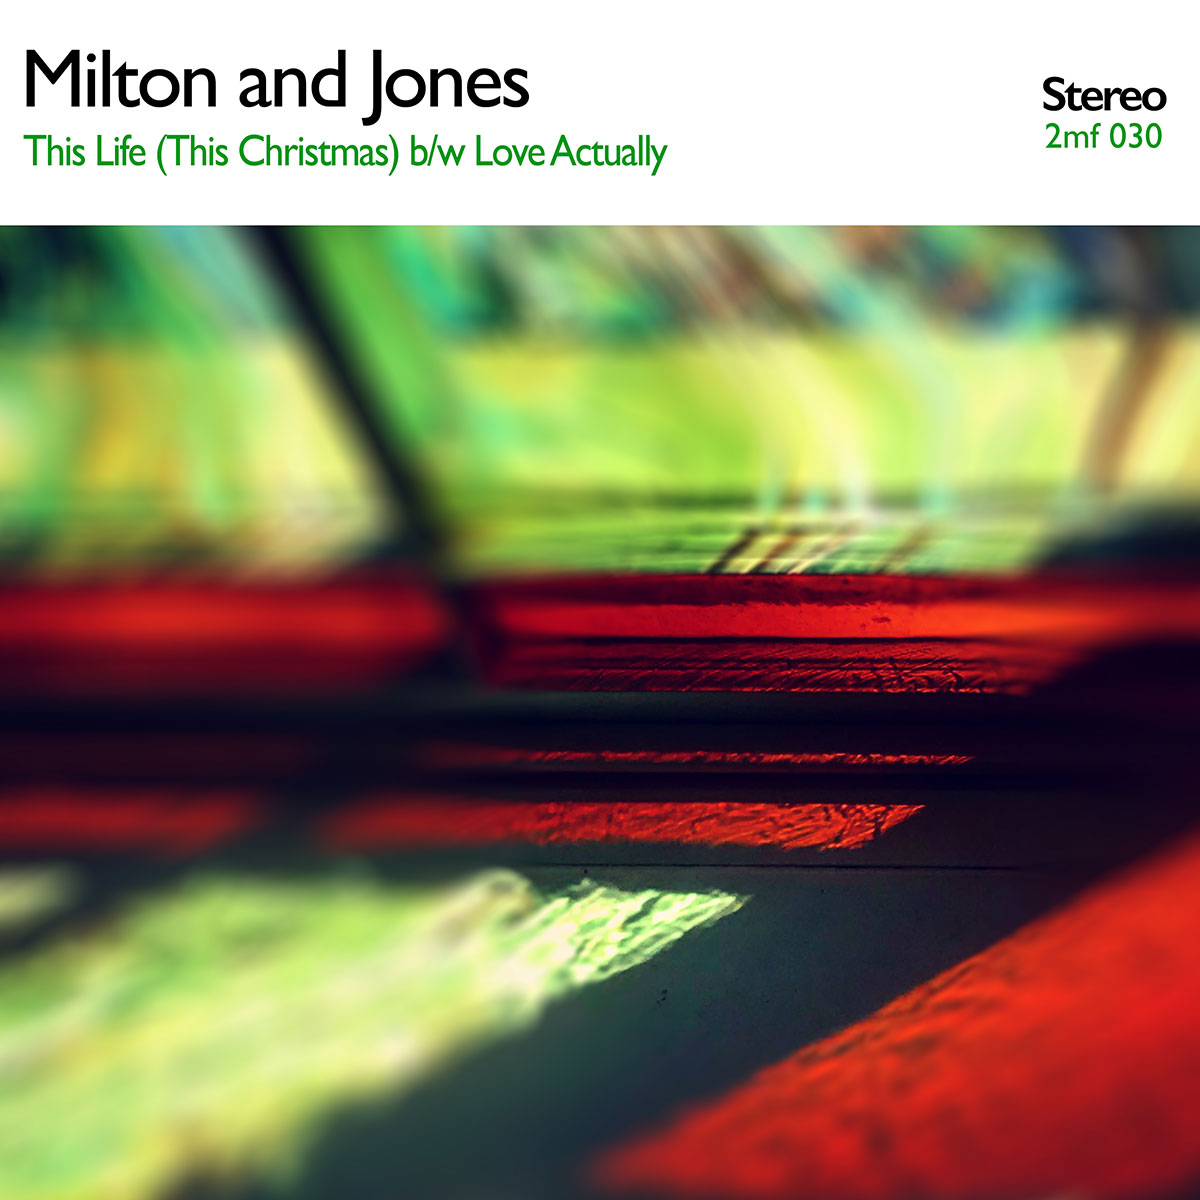 Milton and Jones - This Life